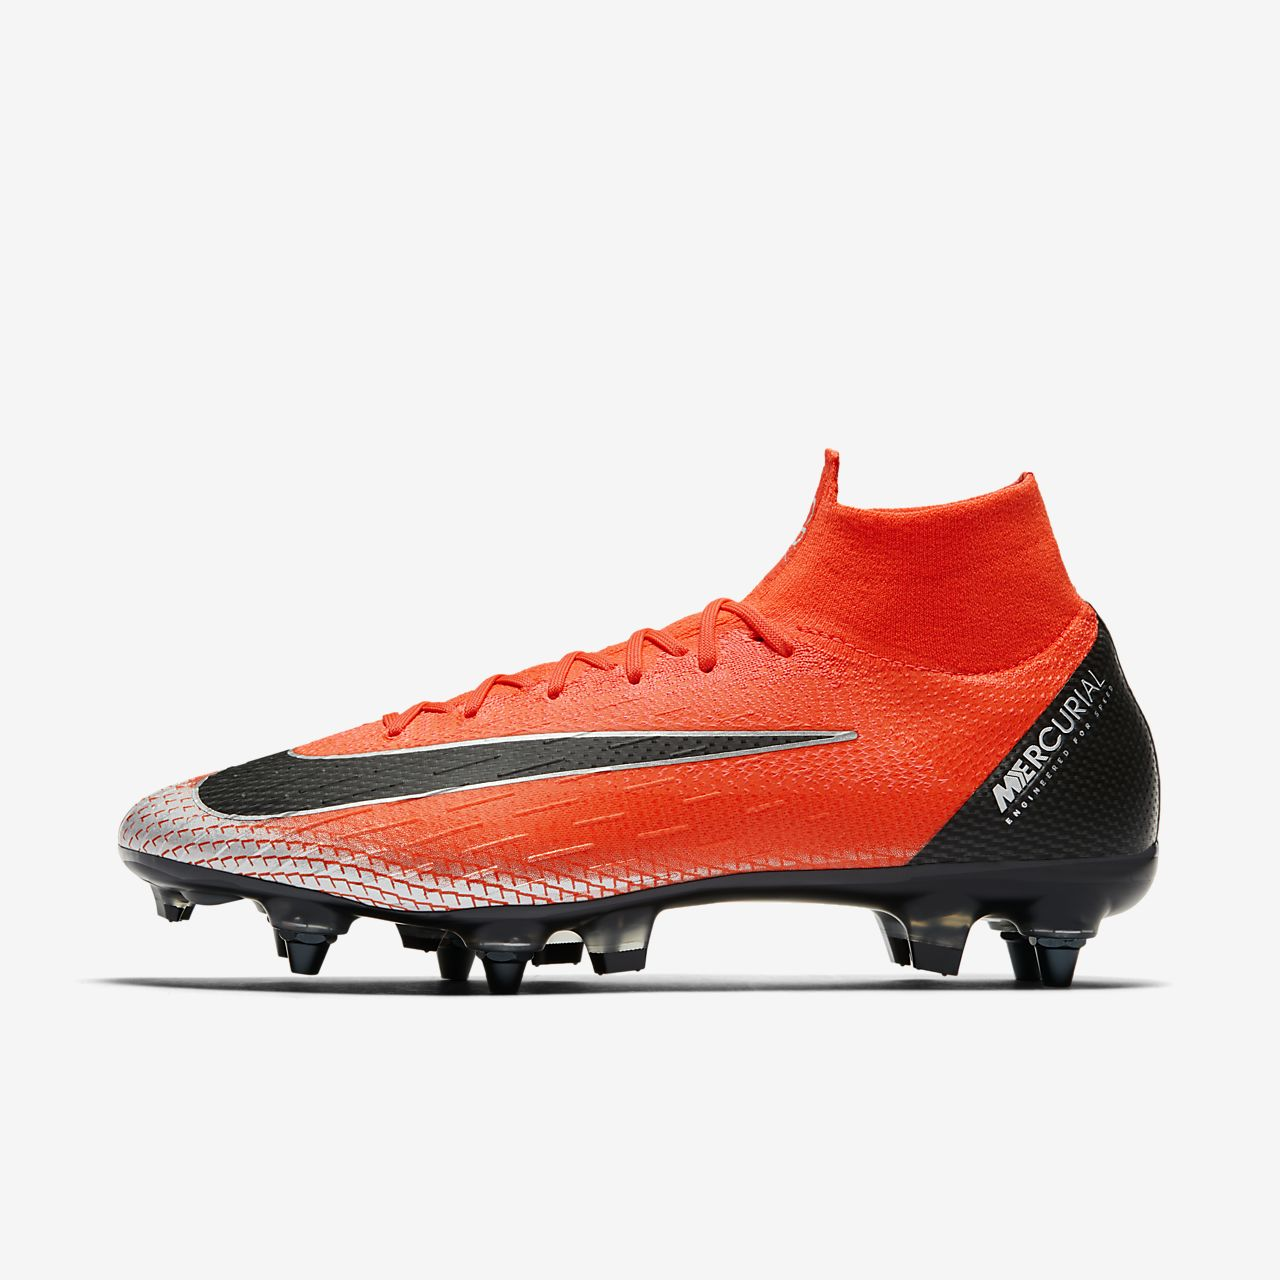 new product fe321 83f57 ... Chaussure de football à crampons pour terrain gras CR7 Superfly 6 Elite  Anti-Clog